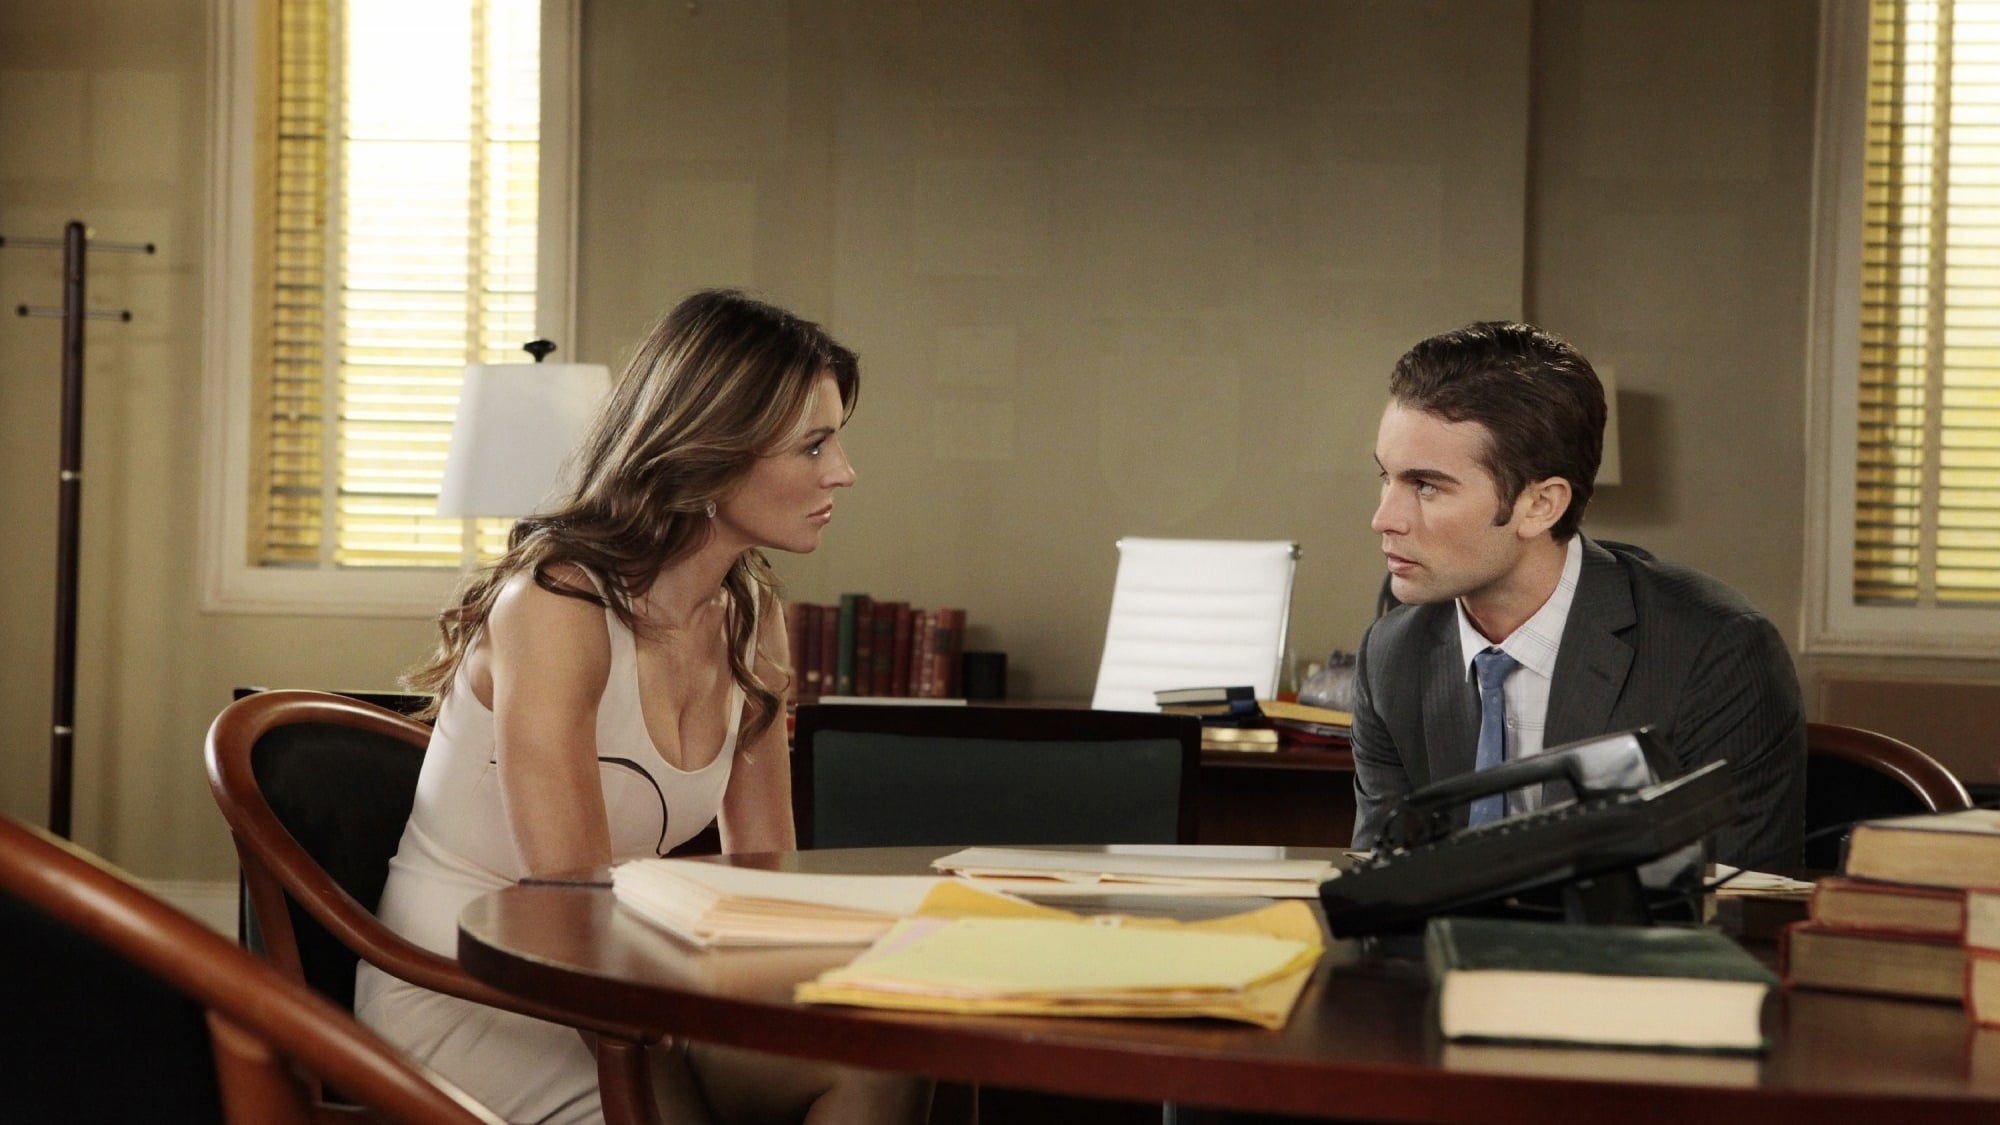 gossip girl season 5 episode 3 megashare9